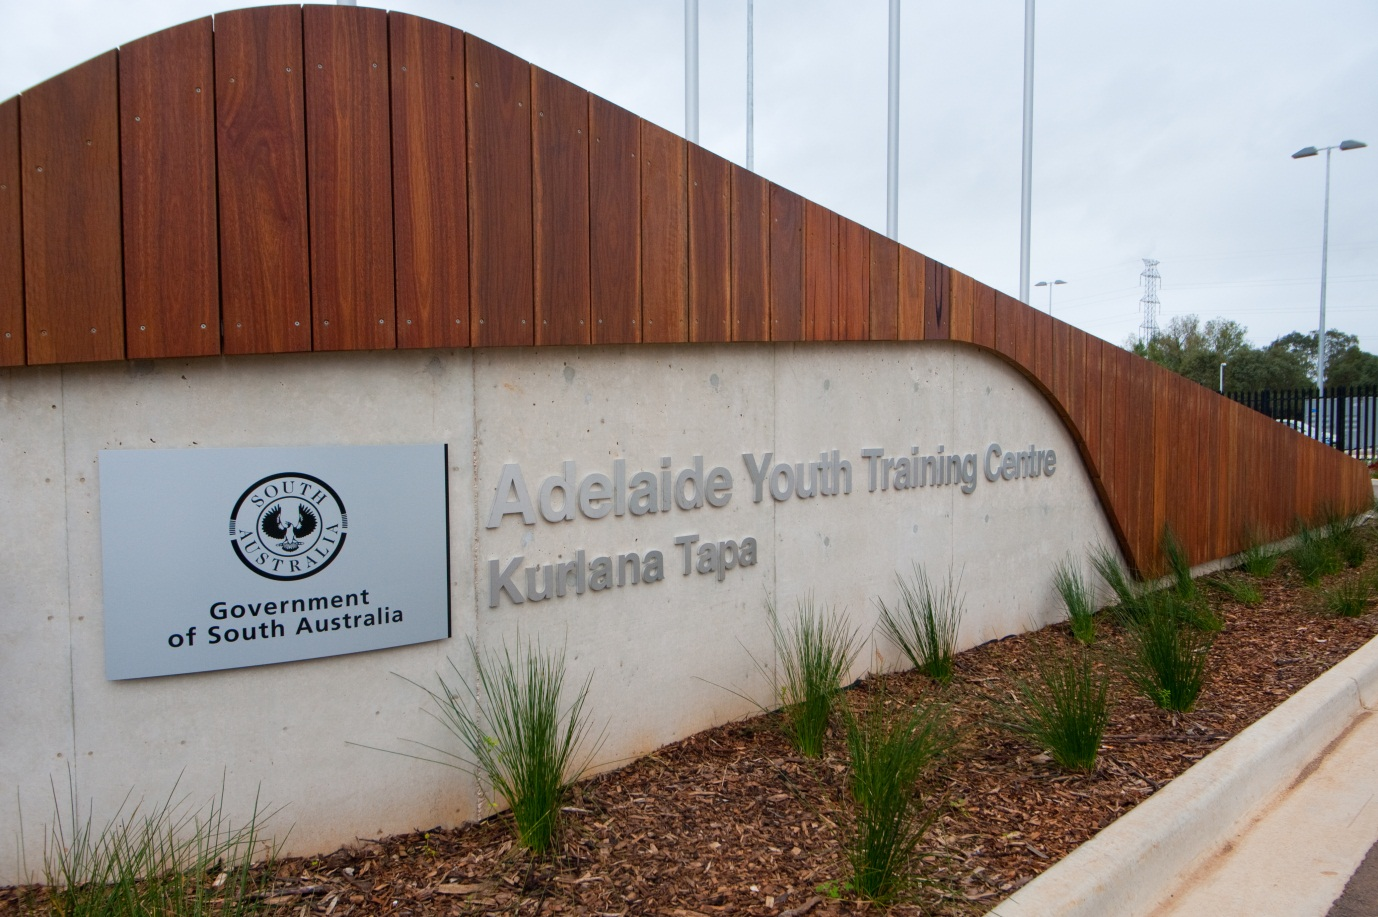 Adelaide Youth Training Centre